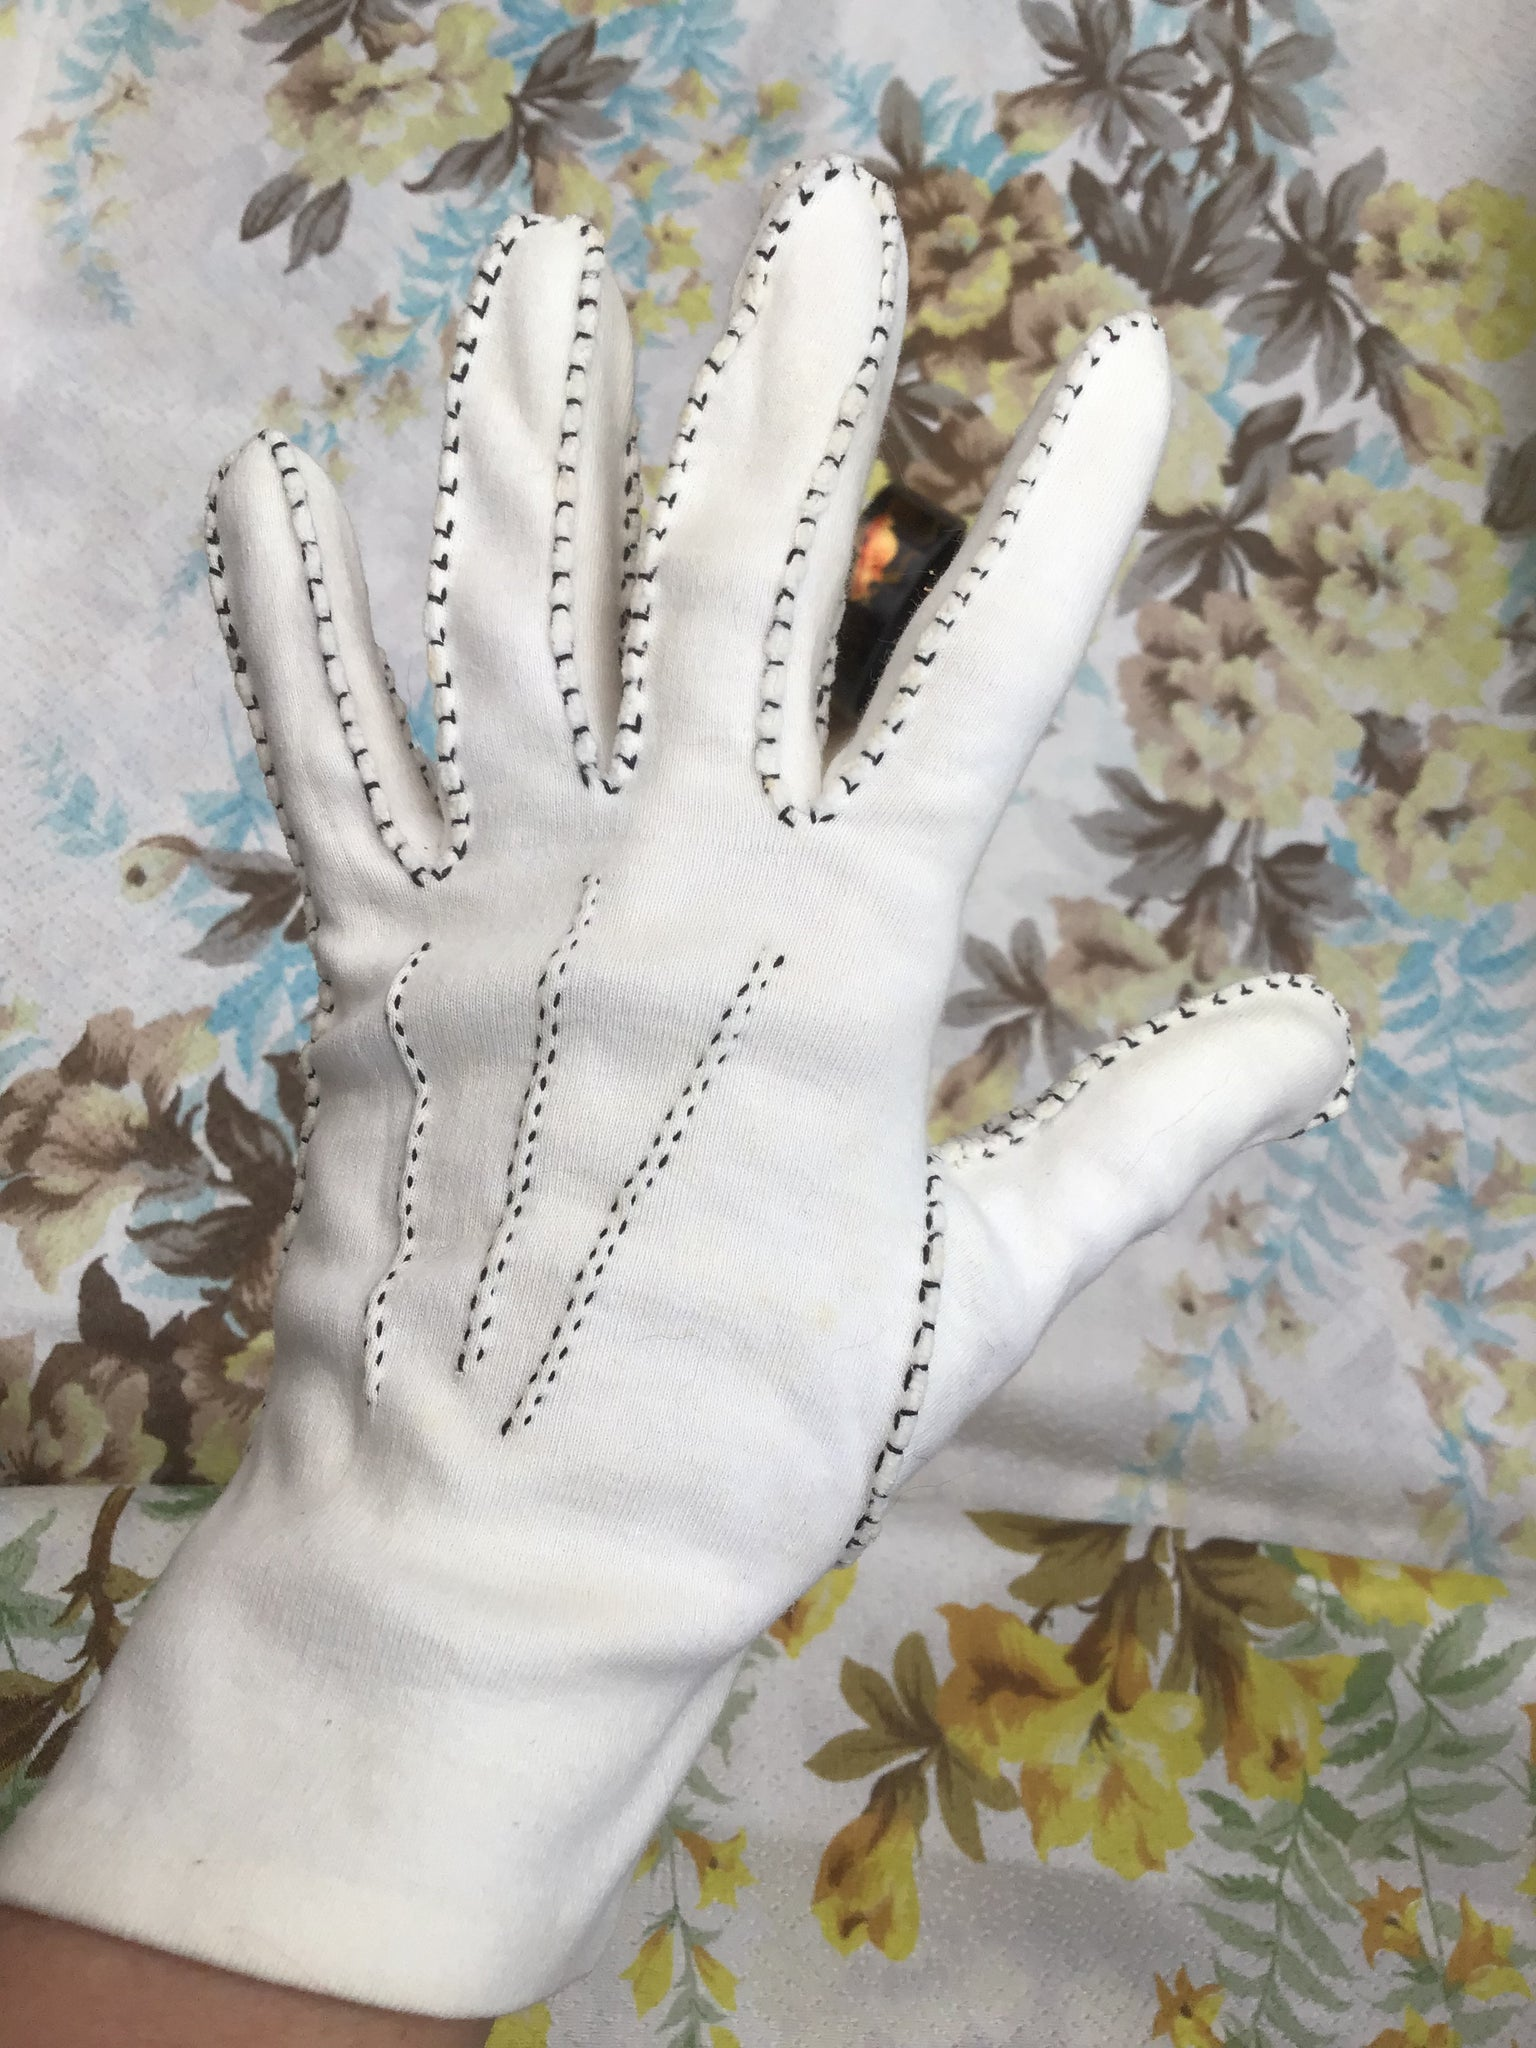 Vintage white cotton gloves, handmade with black contrasting stitching around the seams